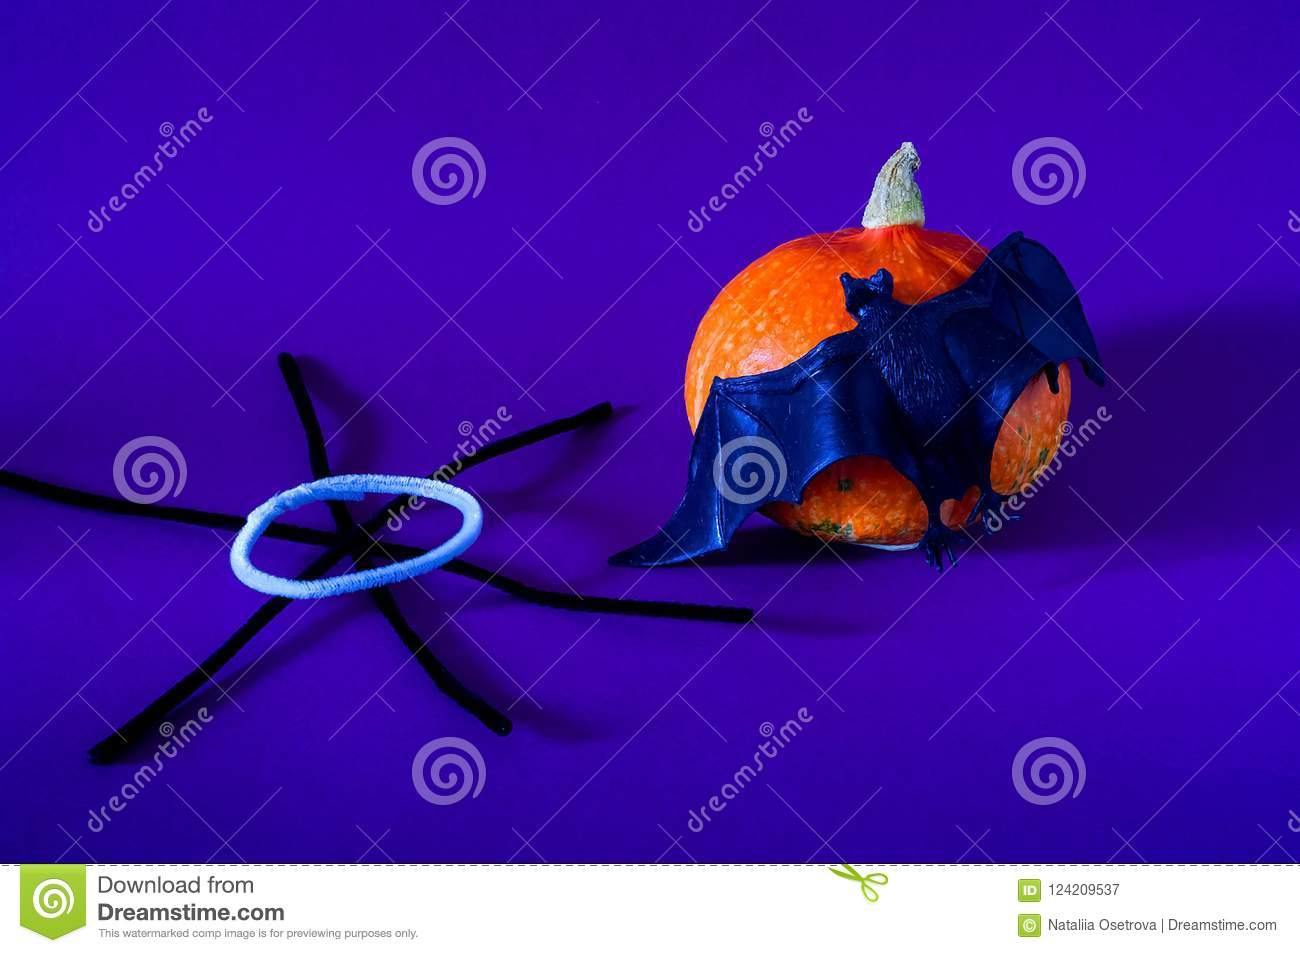 Symbol Of Halloween Is Orange Pumpkin Bat And Black Spiderweb On